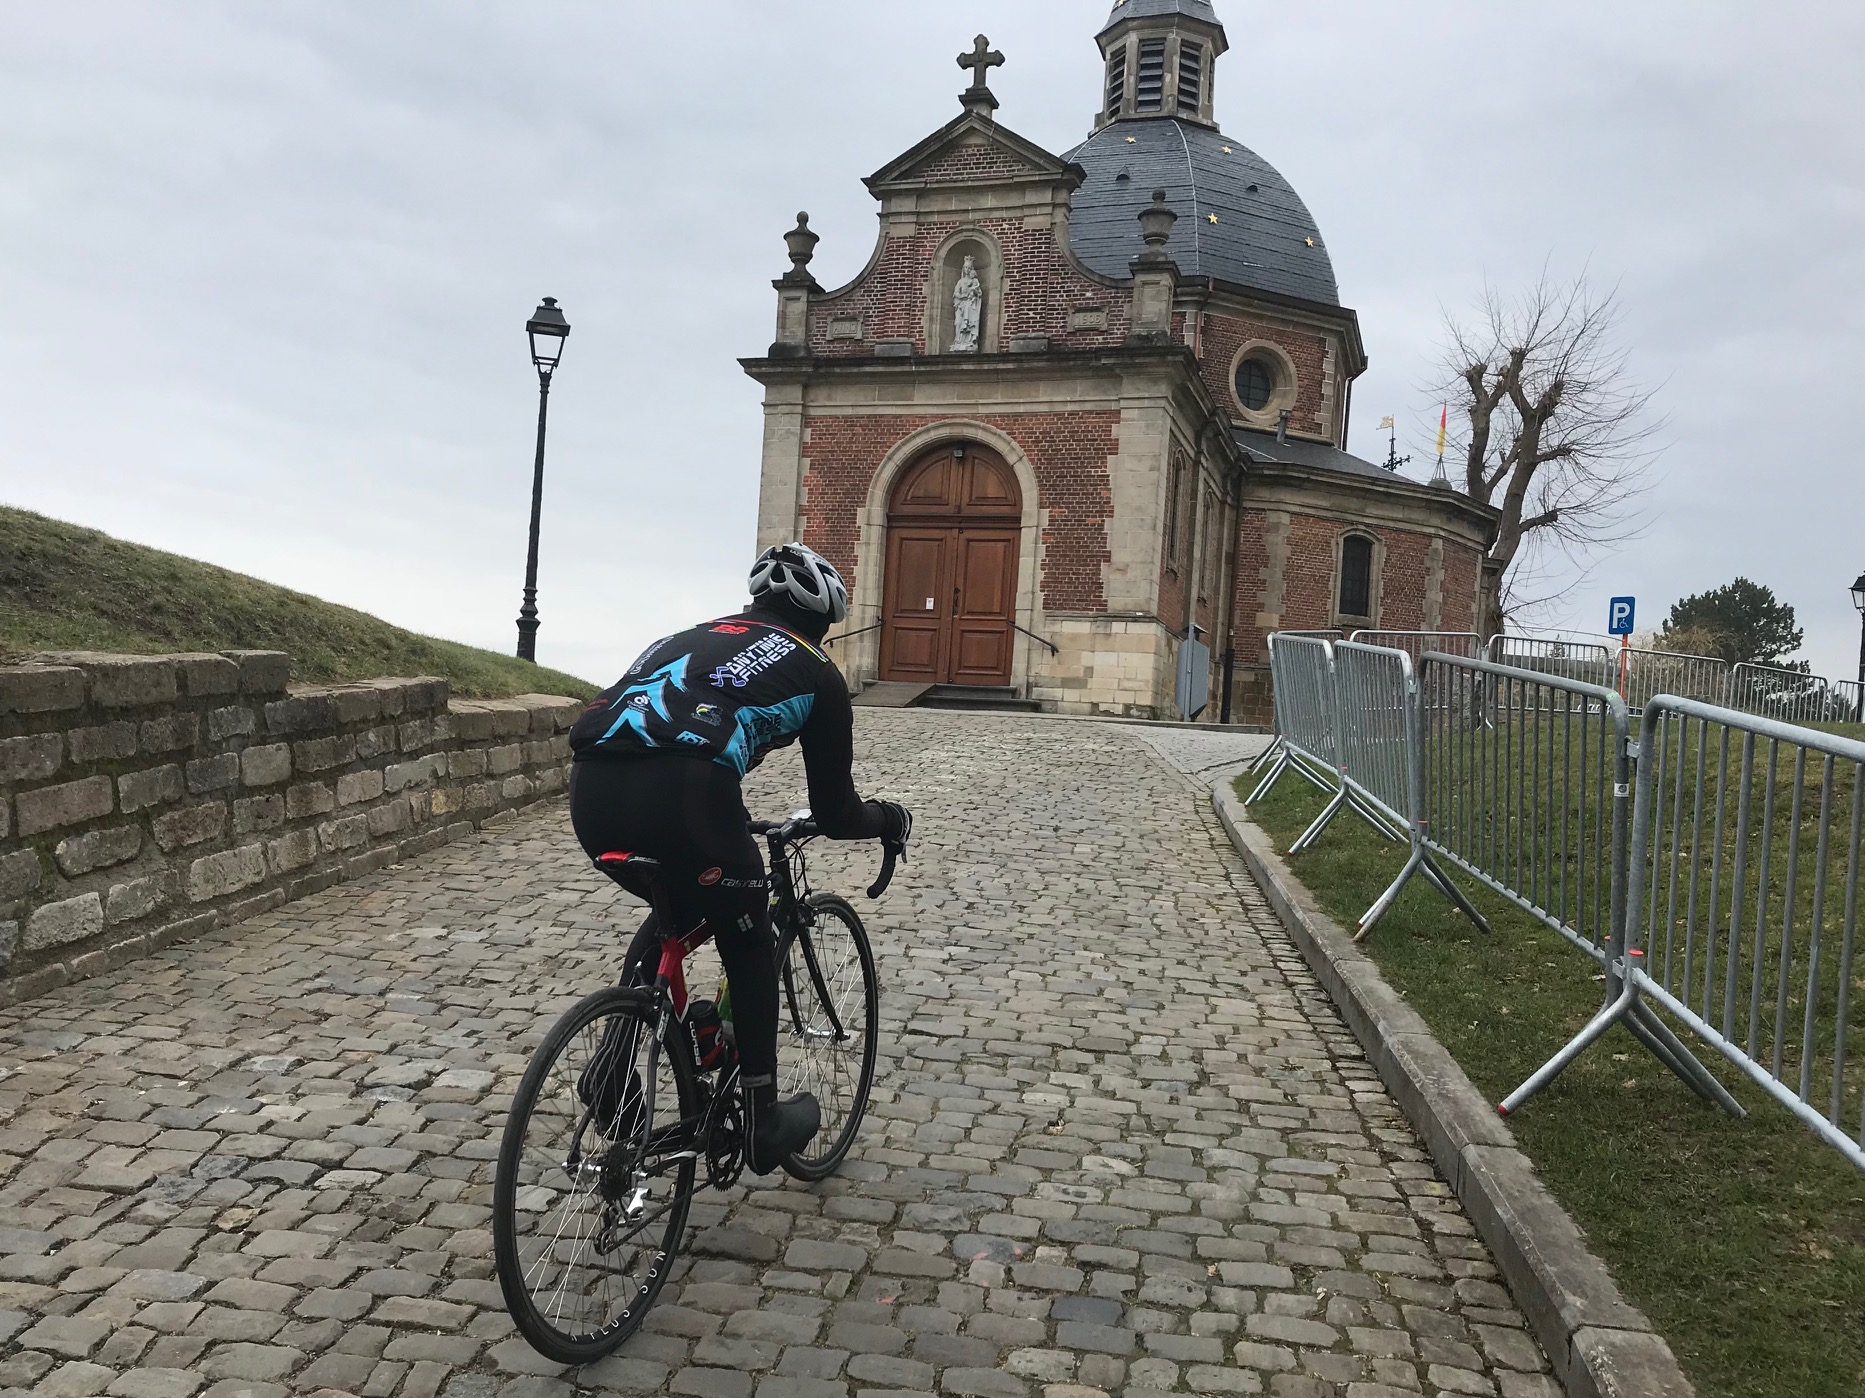 BiciSport in Flanders 18 @ 26 Mar - Mike Lawson, having climbed the first Muur, then climbs the Chapel Muur cobbled climb with the lovely Church at the summit.